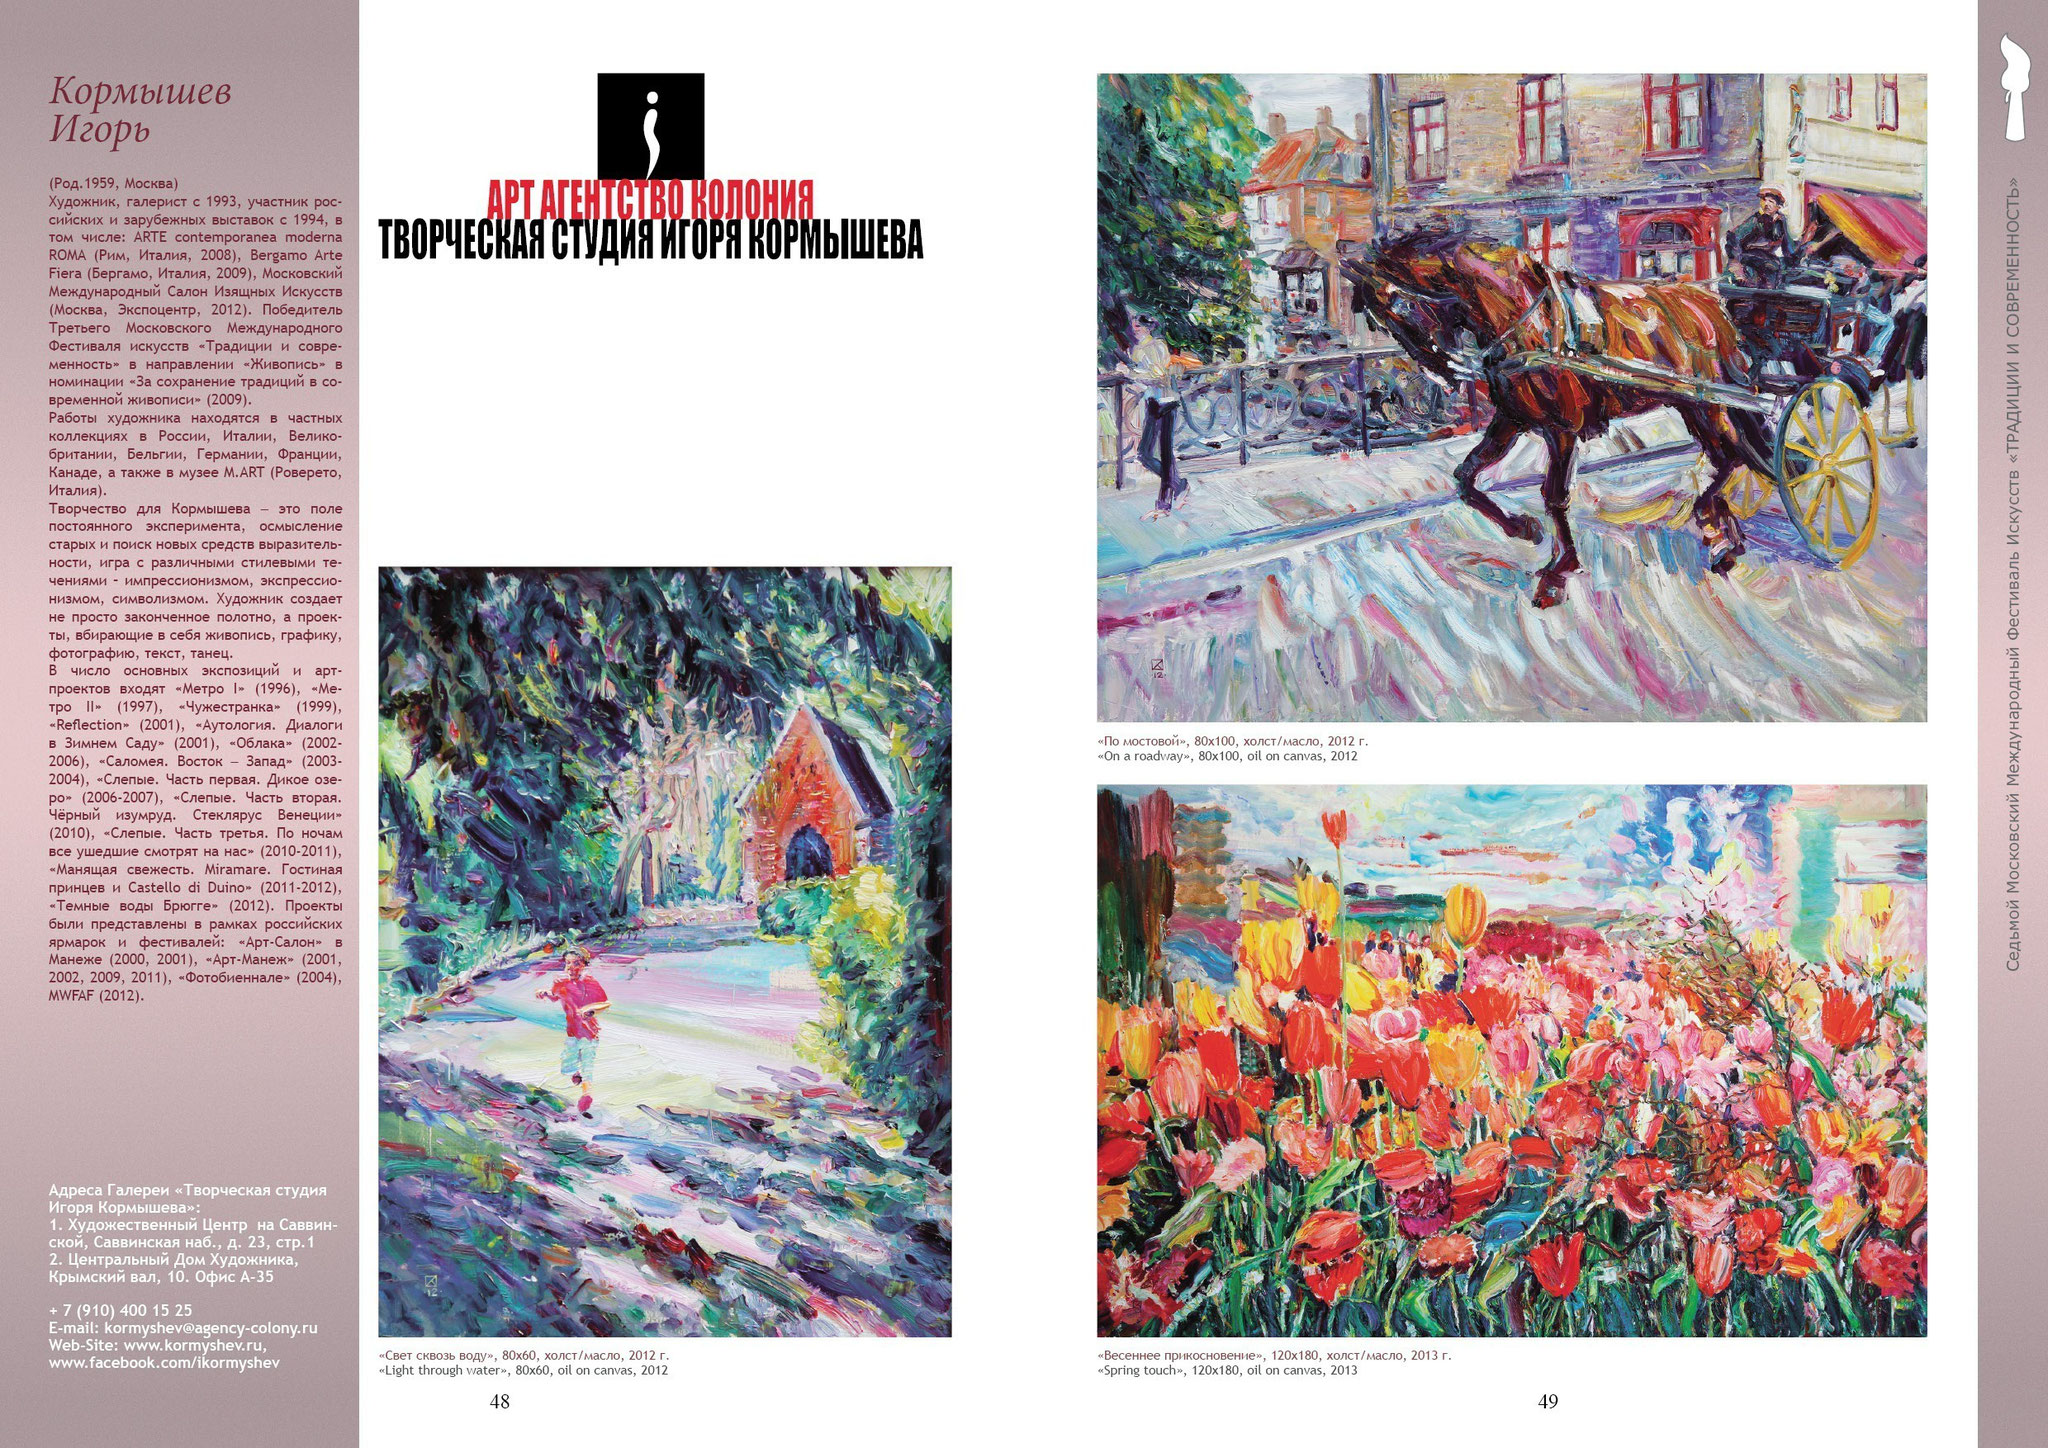 Catalog of the Tradition and Modernity Festival, 2013